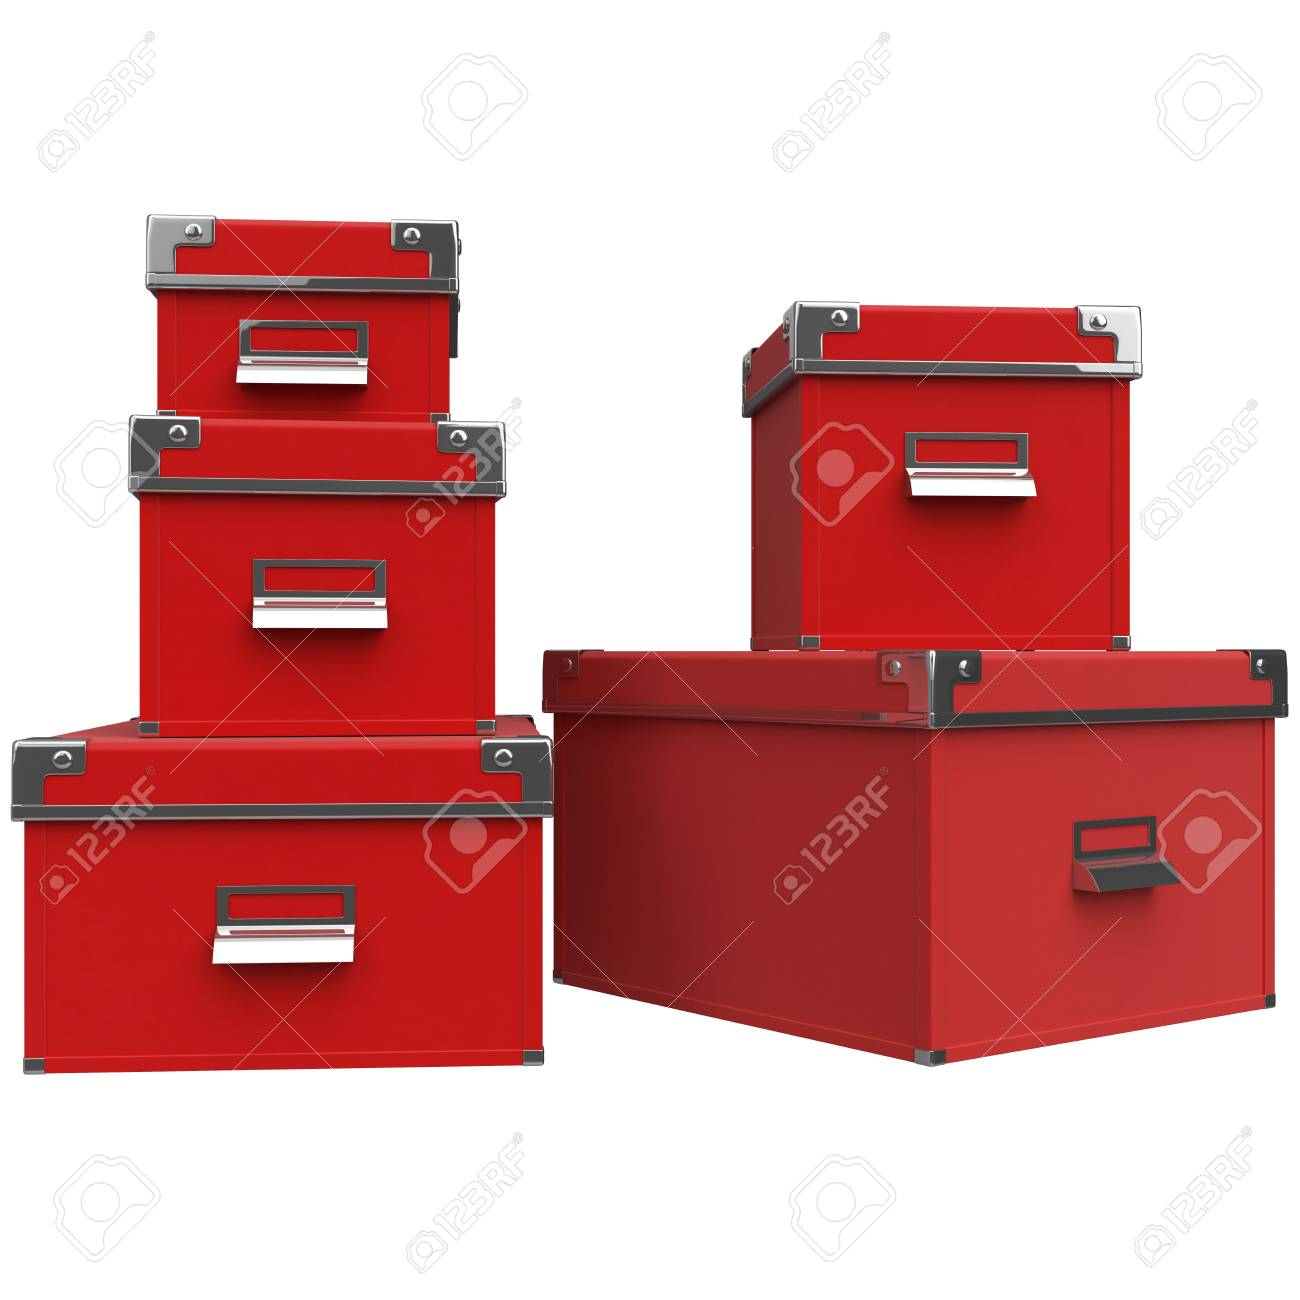 Boxen Gross Stock Photo